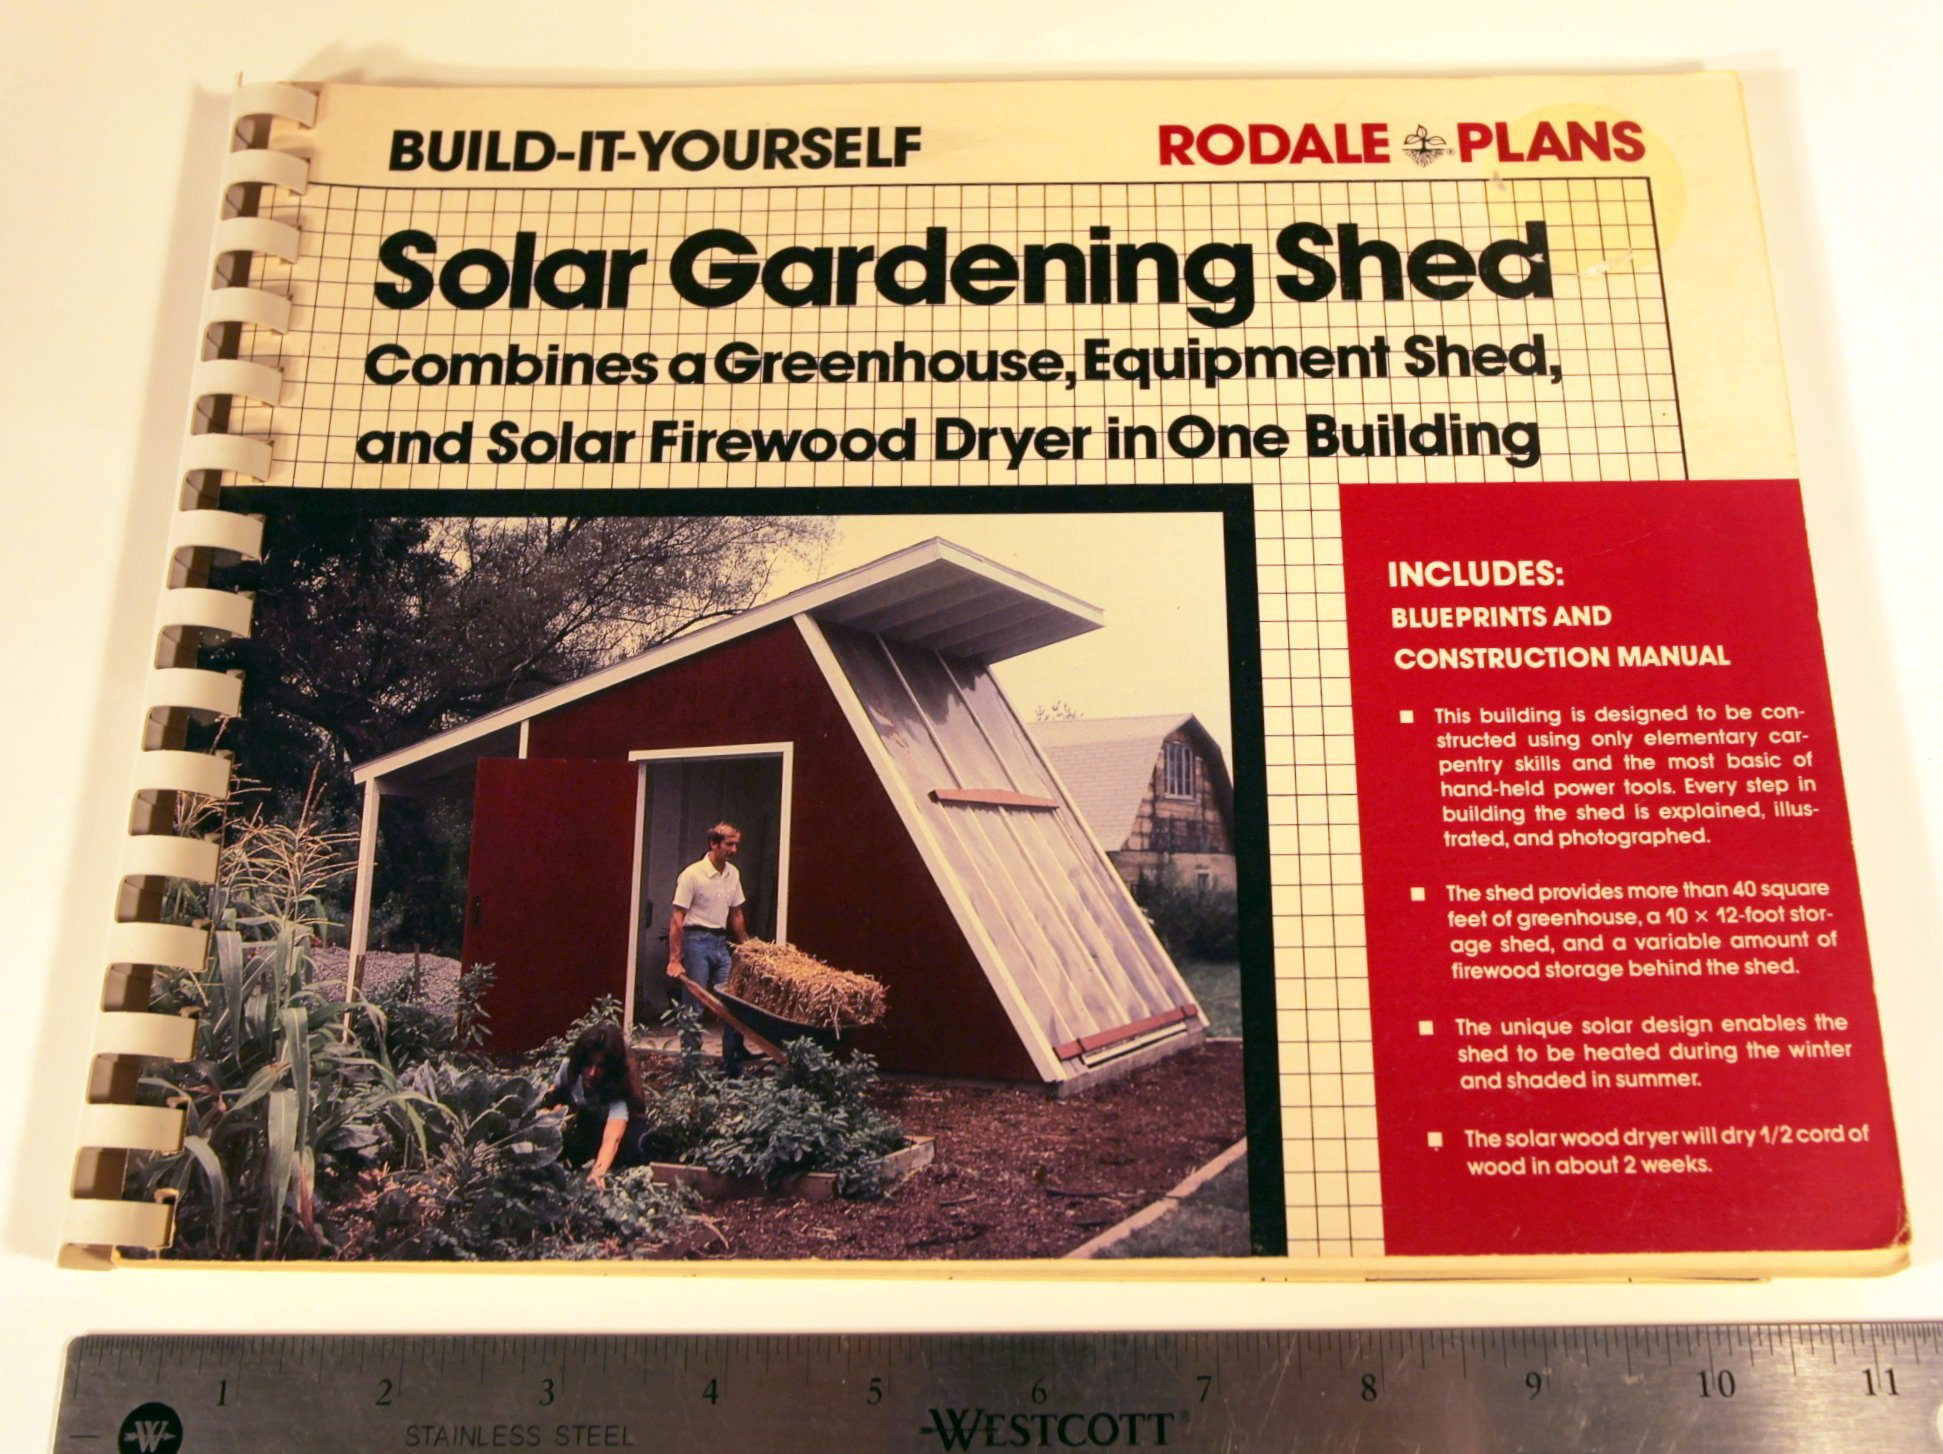 Solar gardening shed: Combines a greenhouse, equipment shed, and solar firewood dryer in one building (Rodale plans)